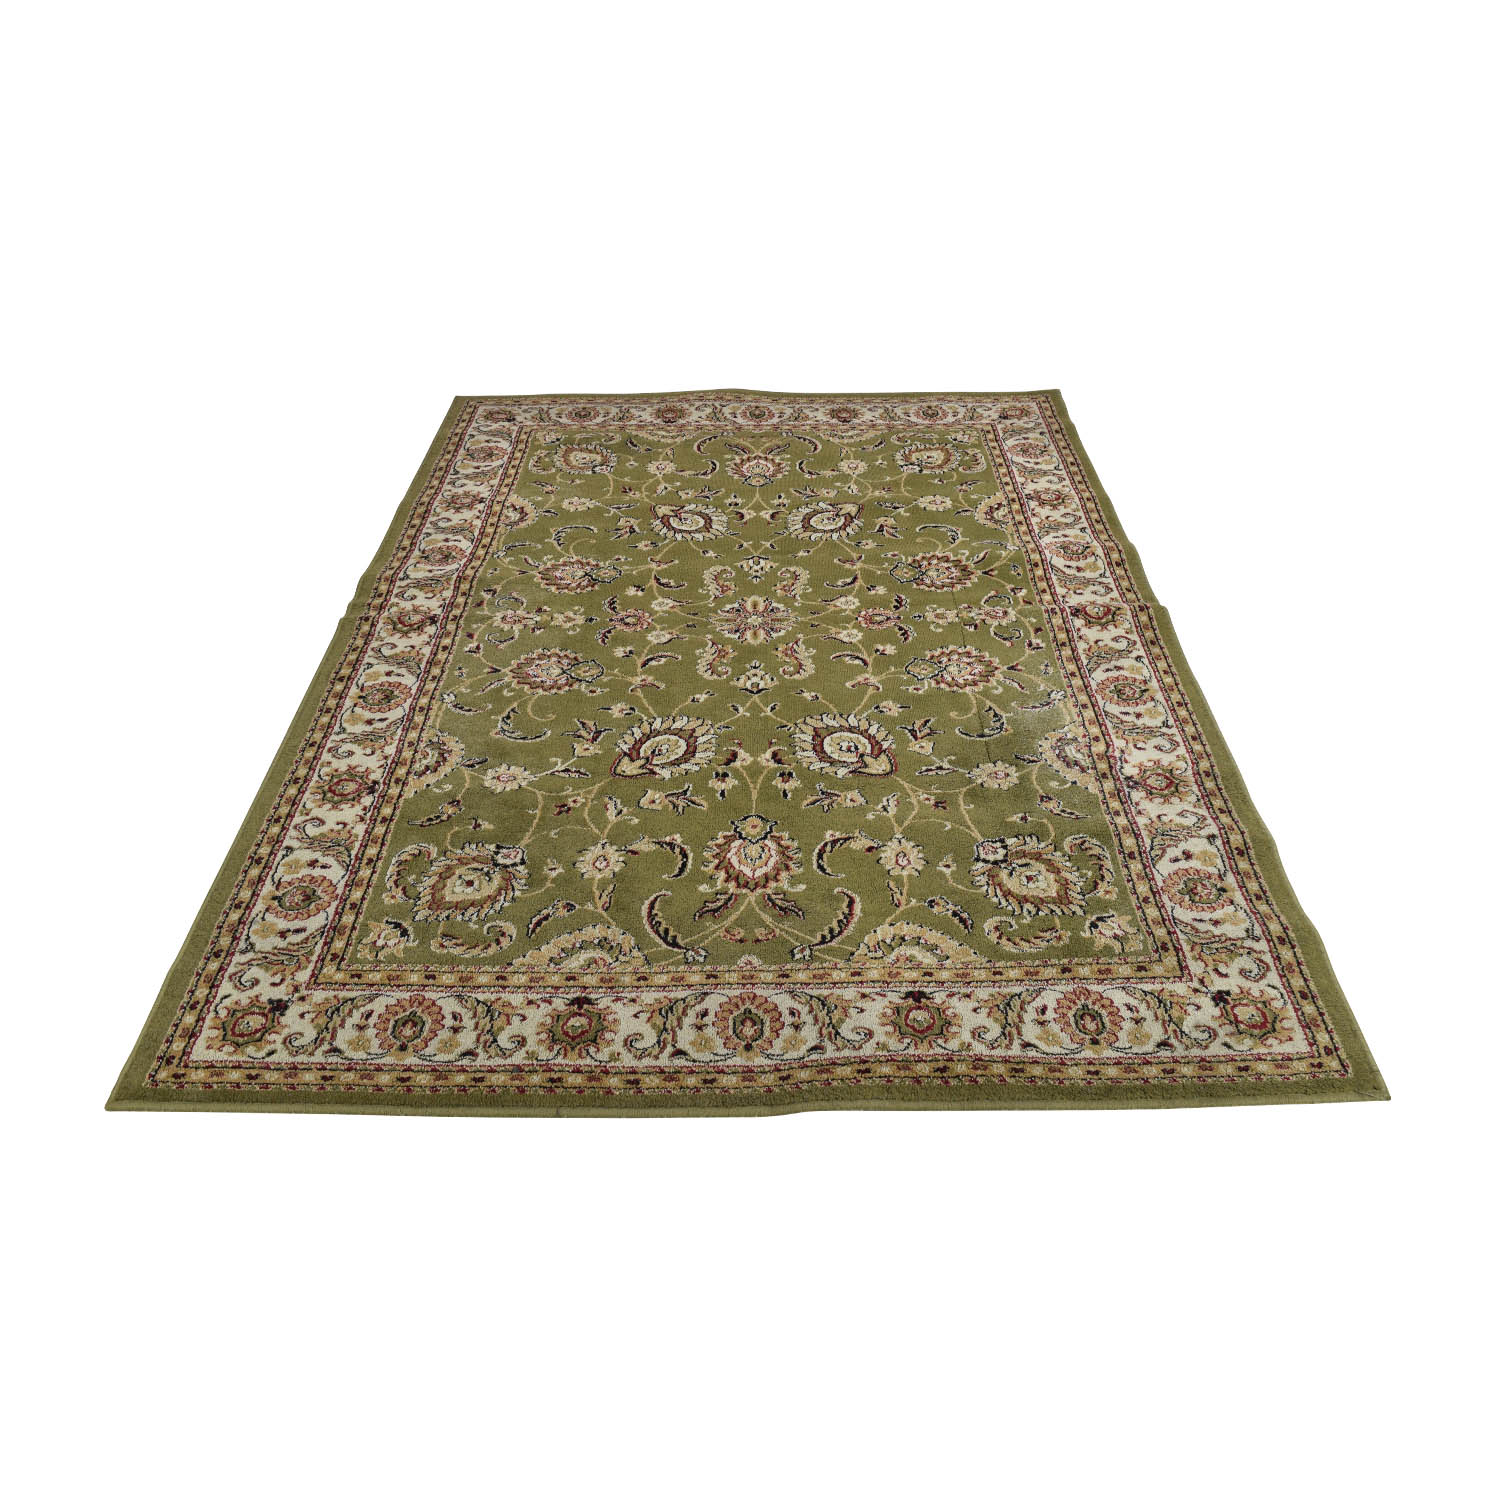 Home goods rugs home goods rugs u with home goods rugs for Affordable home goods